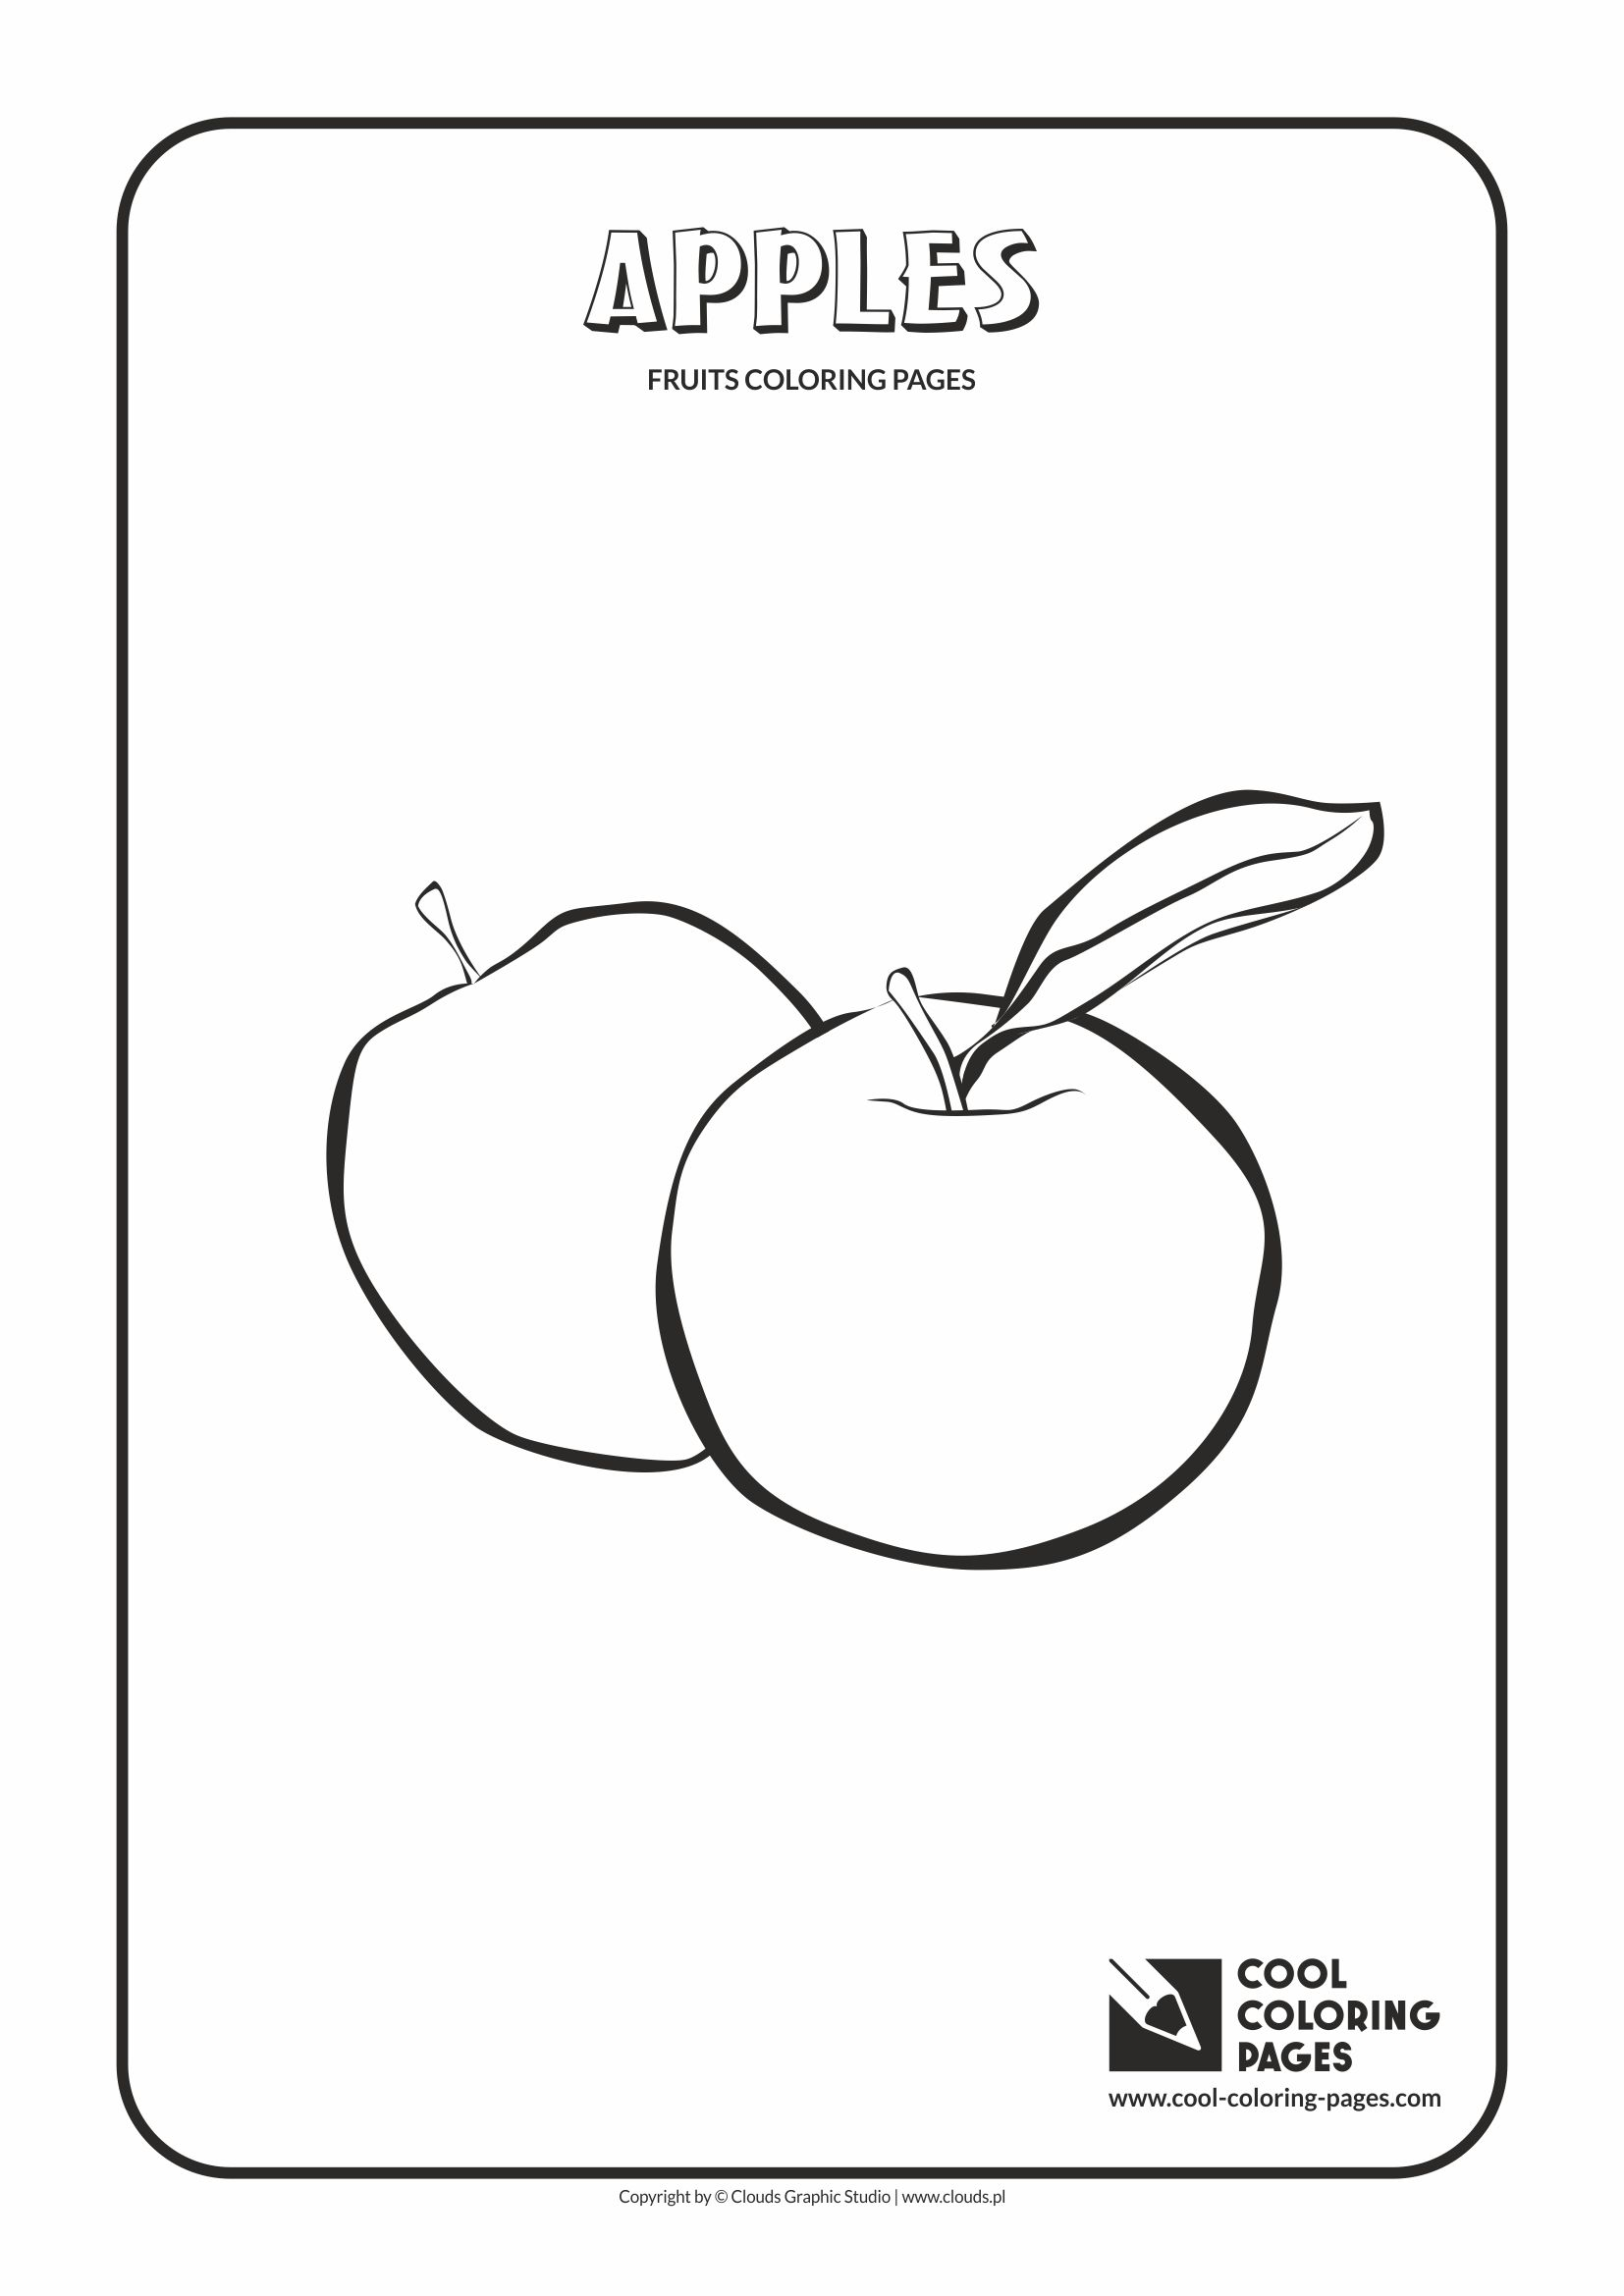 Cool Coloring Pages - Plants / Apples / Coloring page with apples